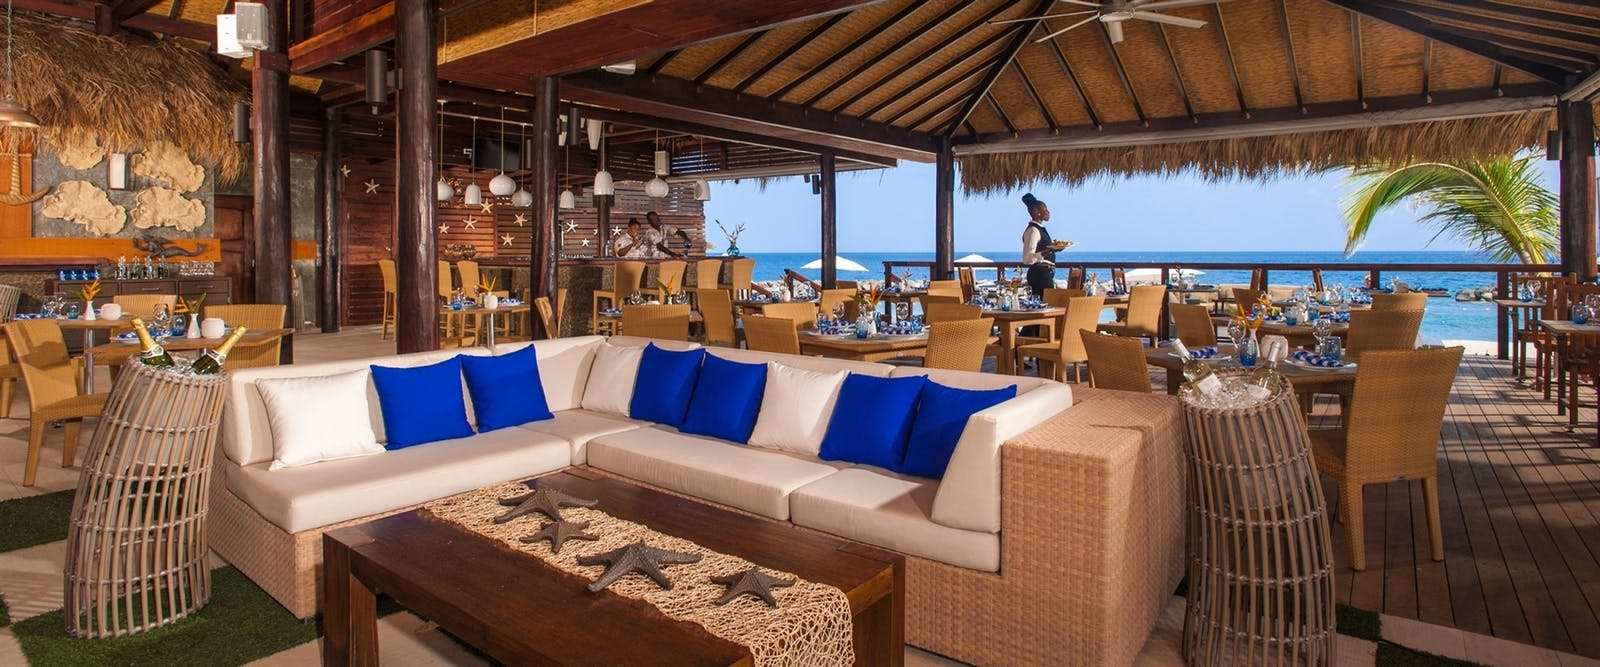 Neptune's Restaurant at Sandals LaSource Grenada Resort & Spa, Grenada